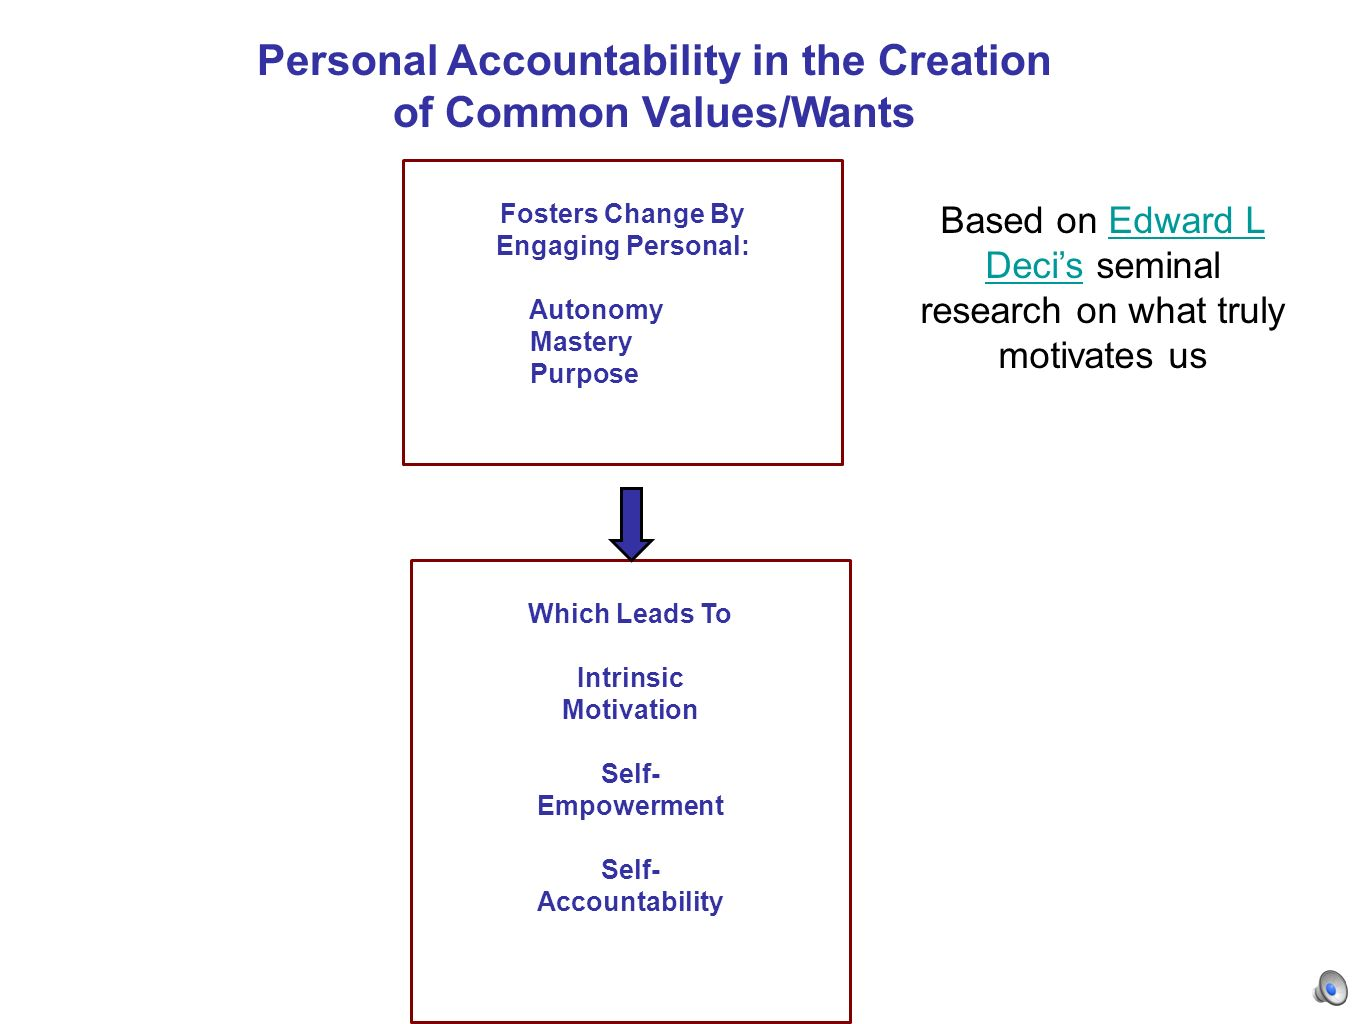 Personal Accountability in the Creation of Common Values/Wants Which Leads To Intrinsic Motivation Self- Empowerment Self- Accountability Fosters Change By Engaging Personal: Autonomy Mastery Purpose Based on Edward L Decis seminal research on what truly motivates usEdward L Decis